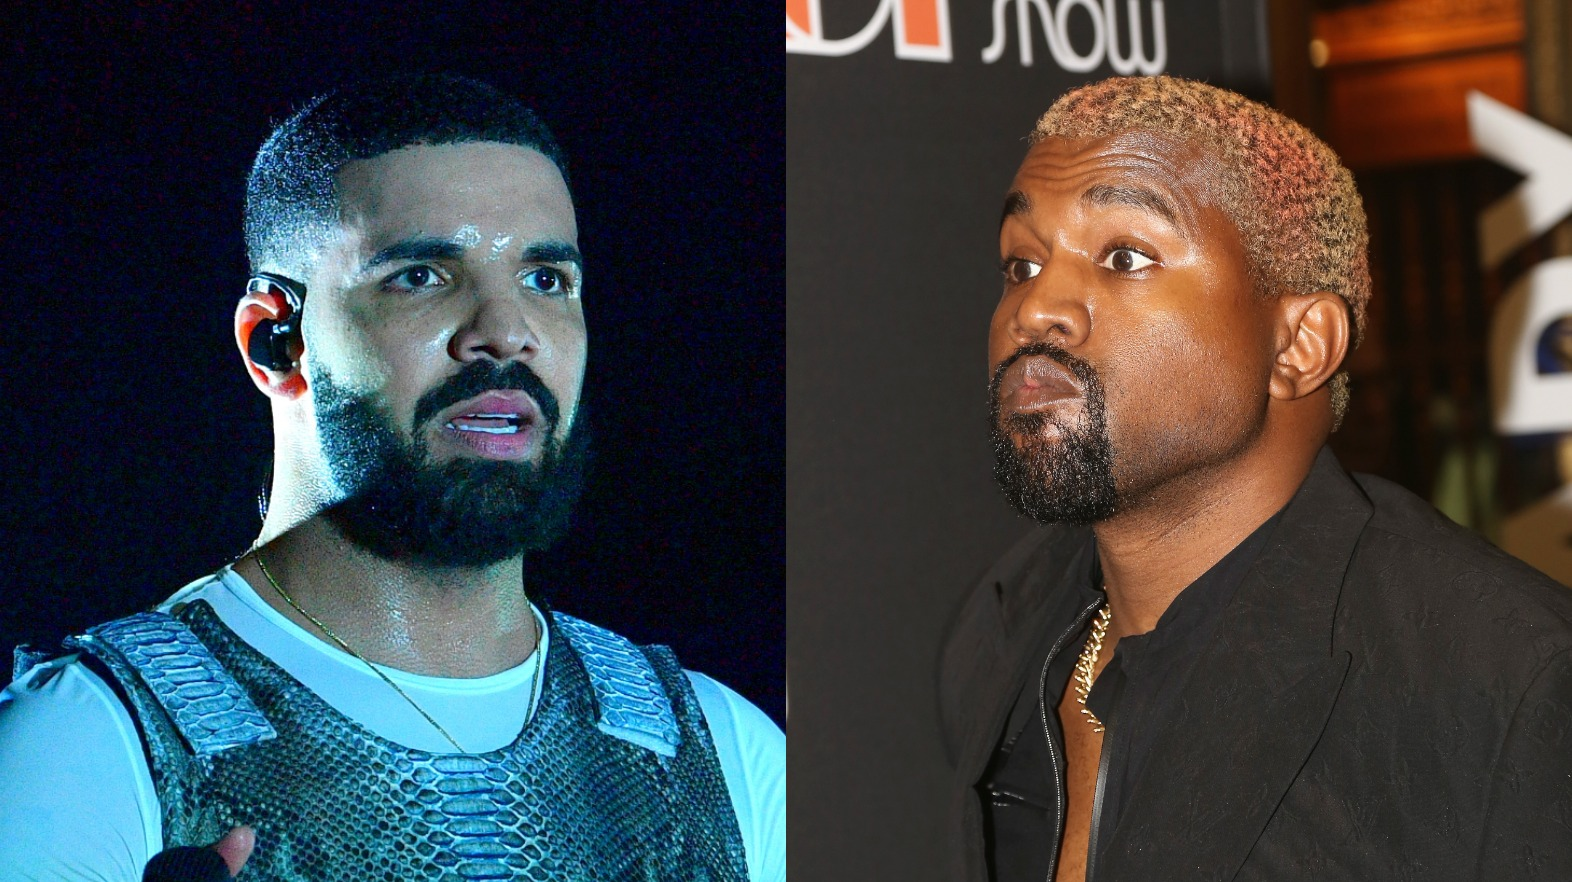 """kanye-west-calls-out-drake-after-realizing-he-follows-kim-kardashian-on-social-media-reignites-their-feud"""